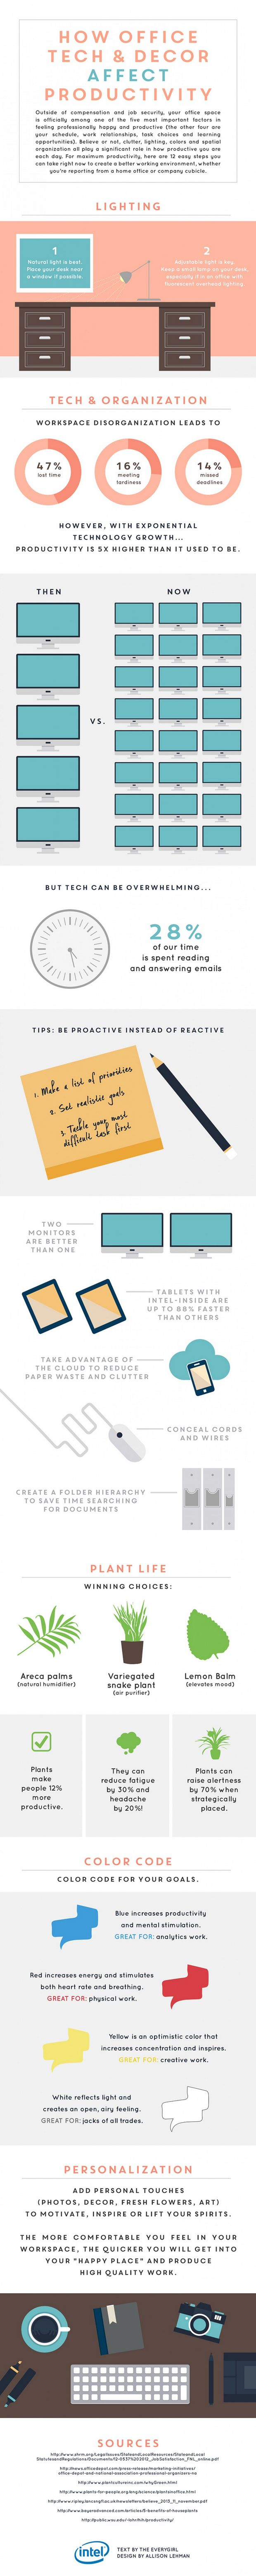 [Infographic] How Office Decor Affects #Productivity